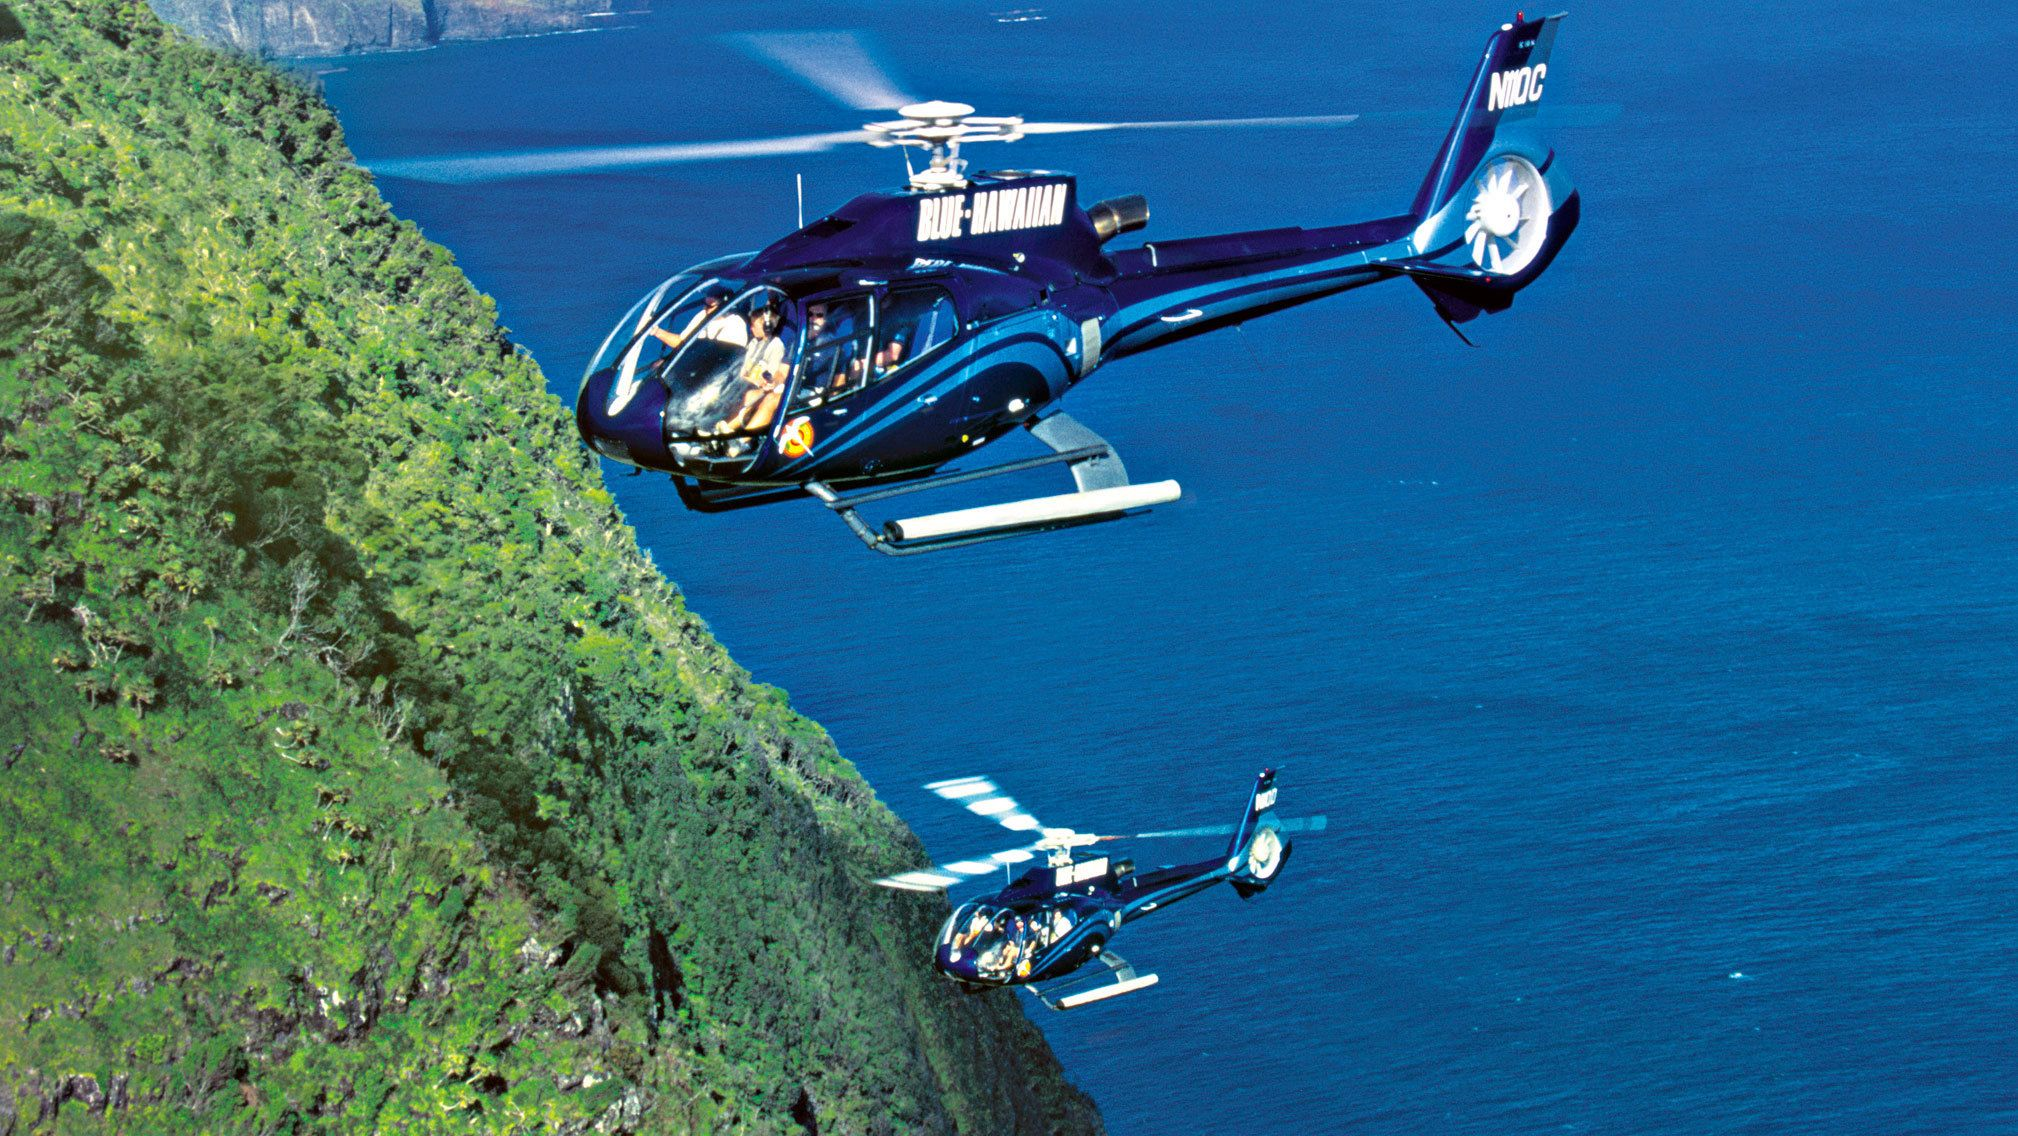 Two helicopters on near the seacliffs on the Waterfalls & Molokai Seacliffs Helicopter Tour in Maui